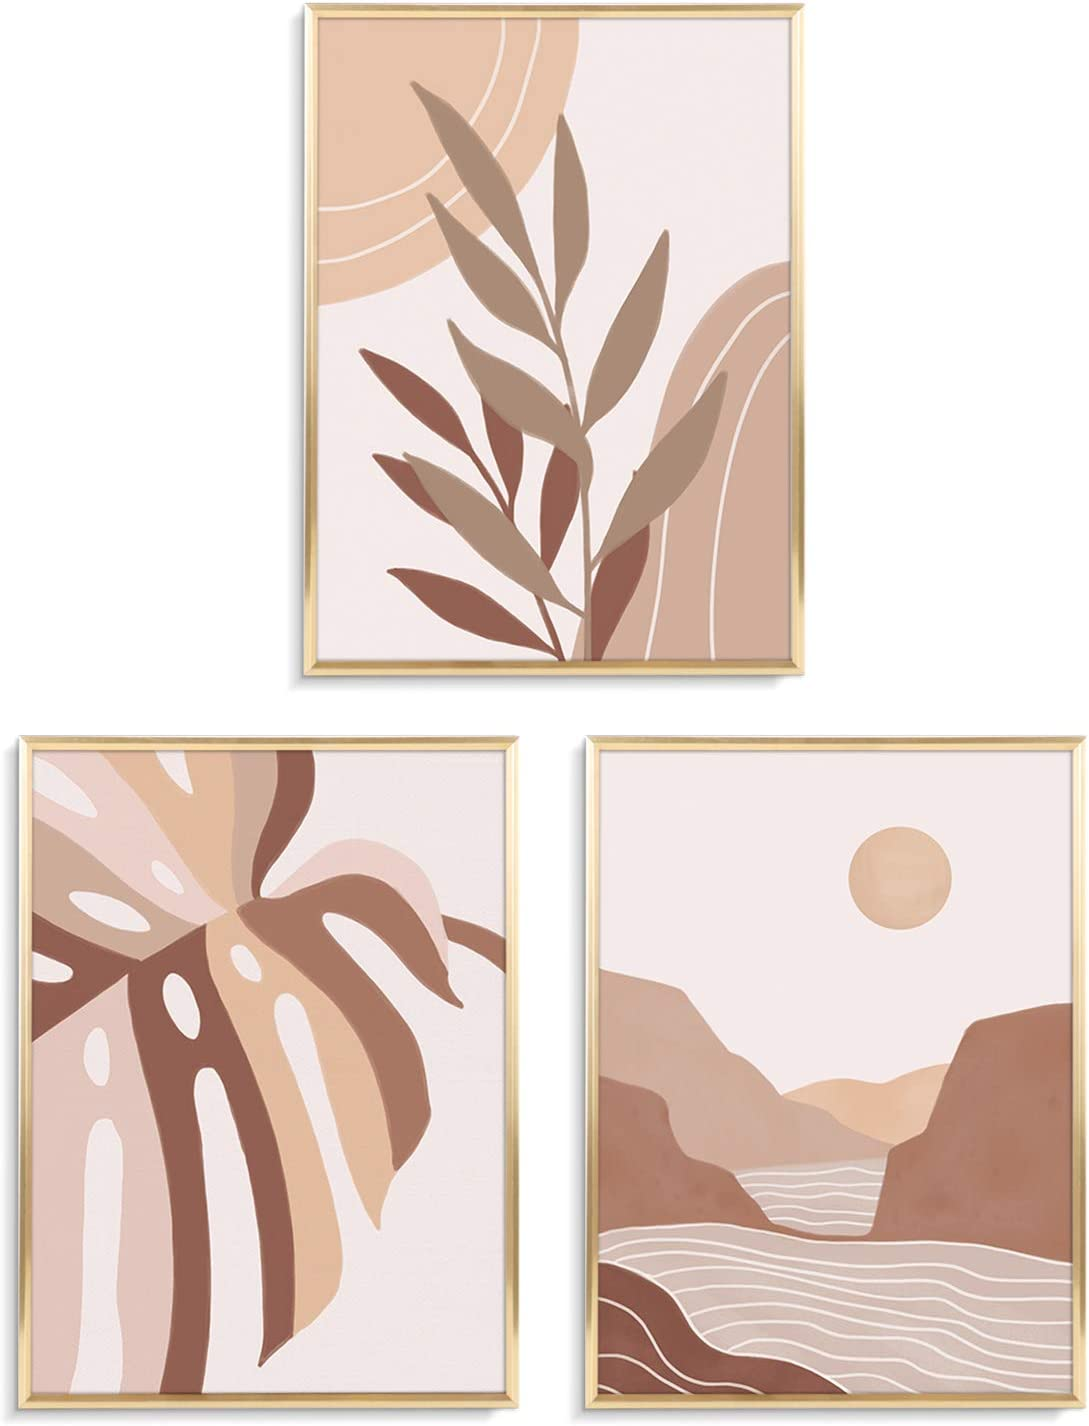 ArtbyHannah 3 Pack 12x16 Inch Mid Century Framed Canvas Wall Art Decor with Gold Frames and Decorative Tropical Botanical Plant Pictures Canvas Prints for Home Decor, Ready to Hang